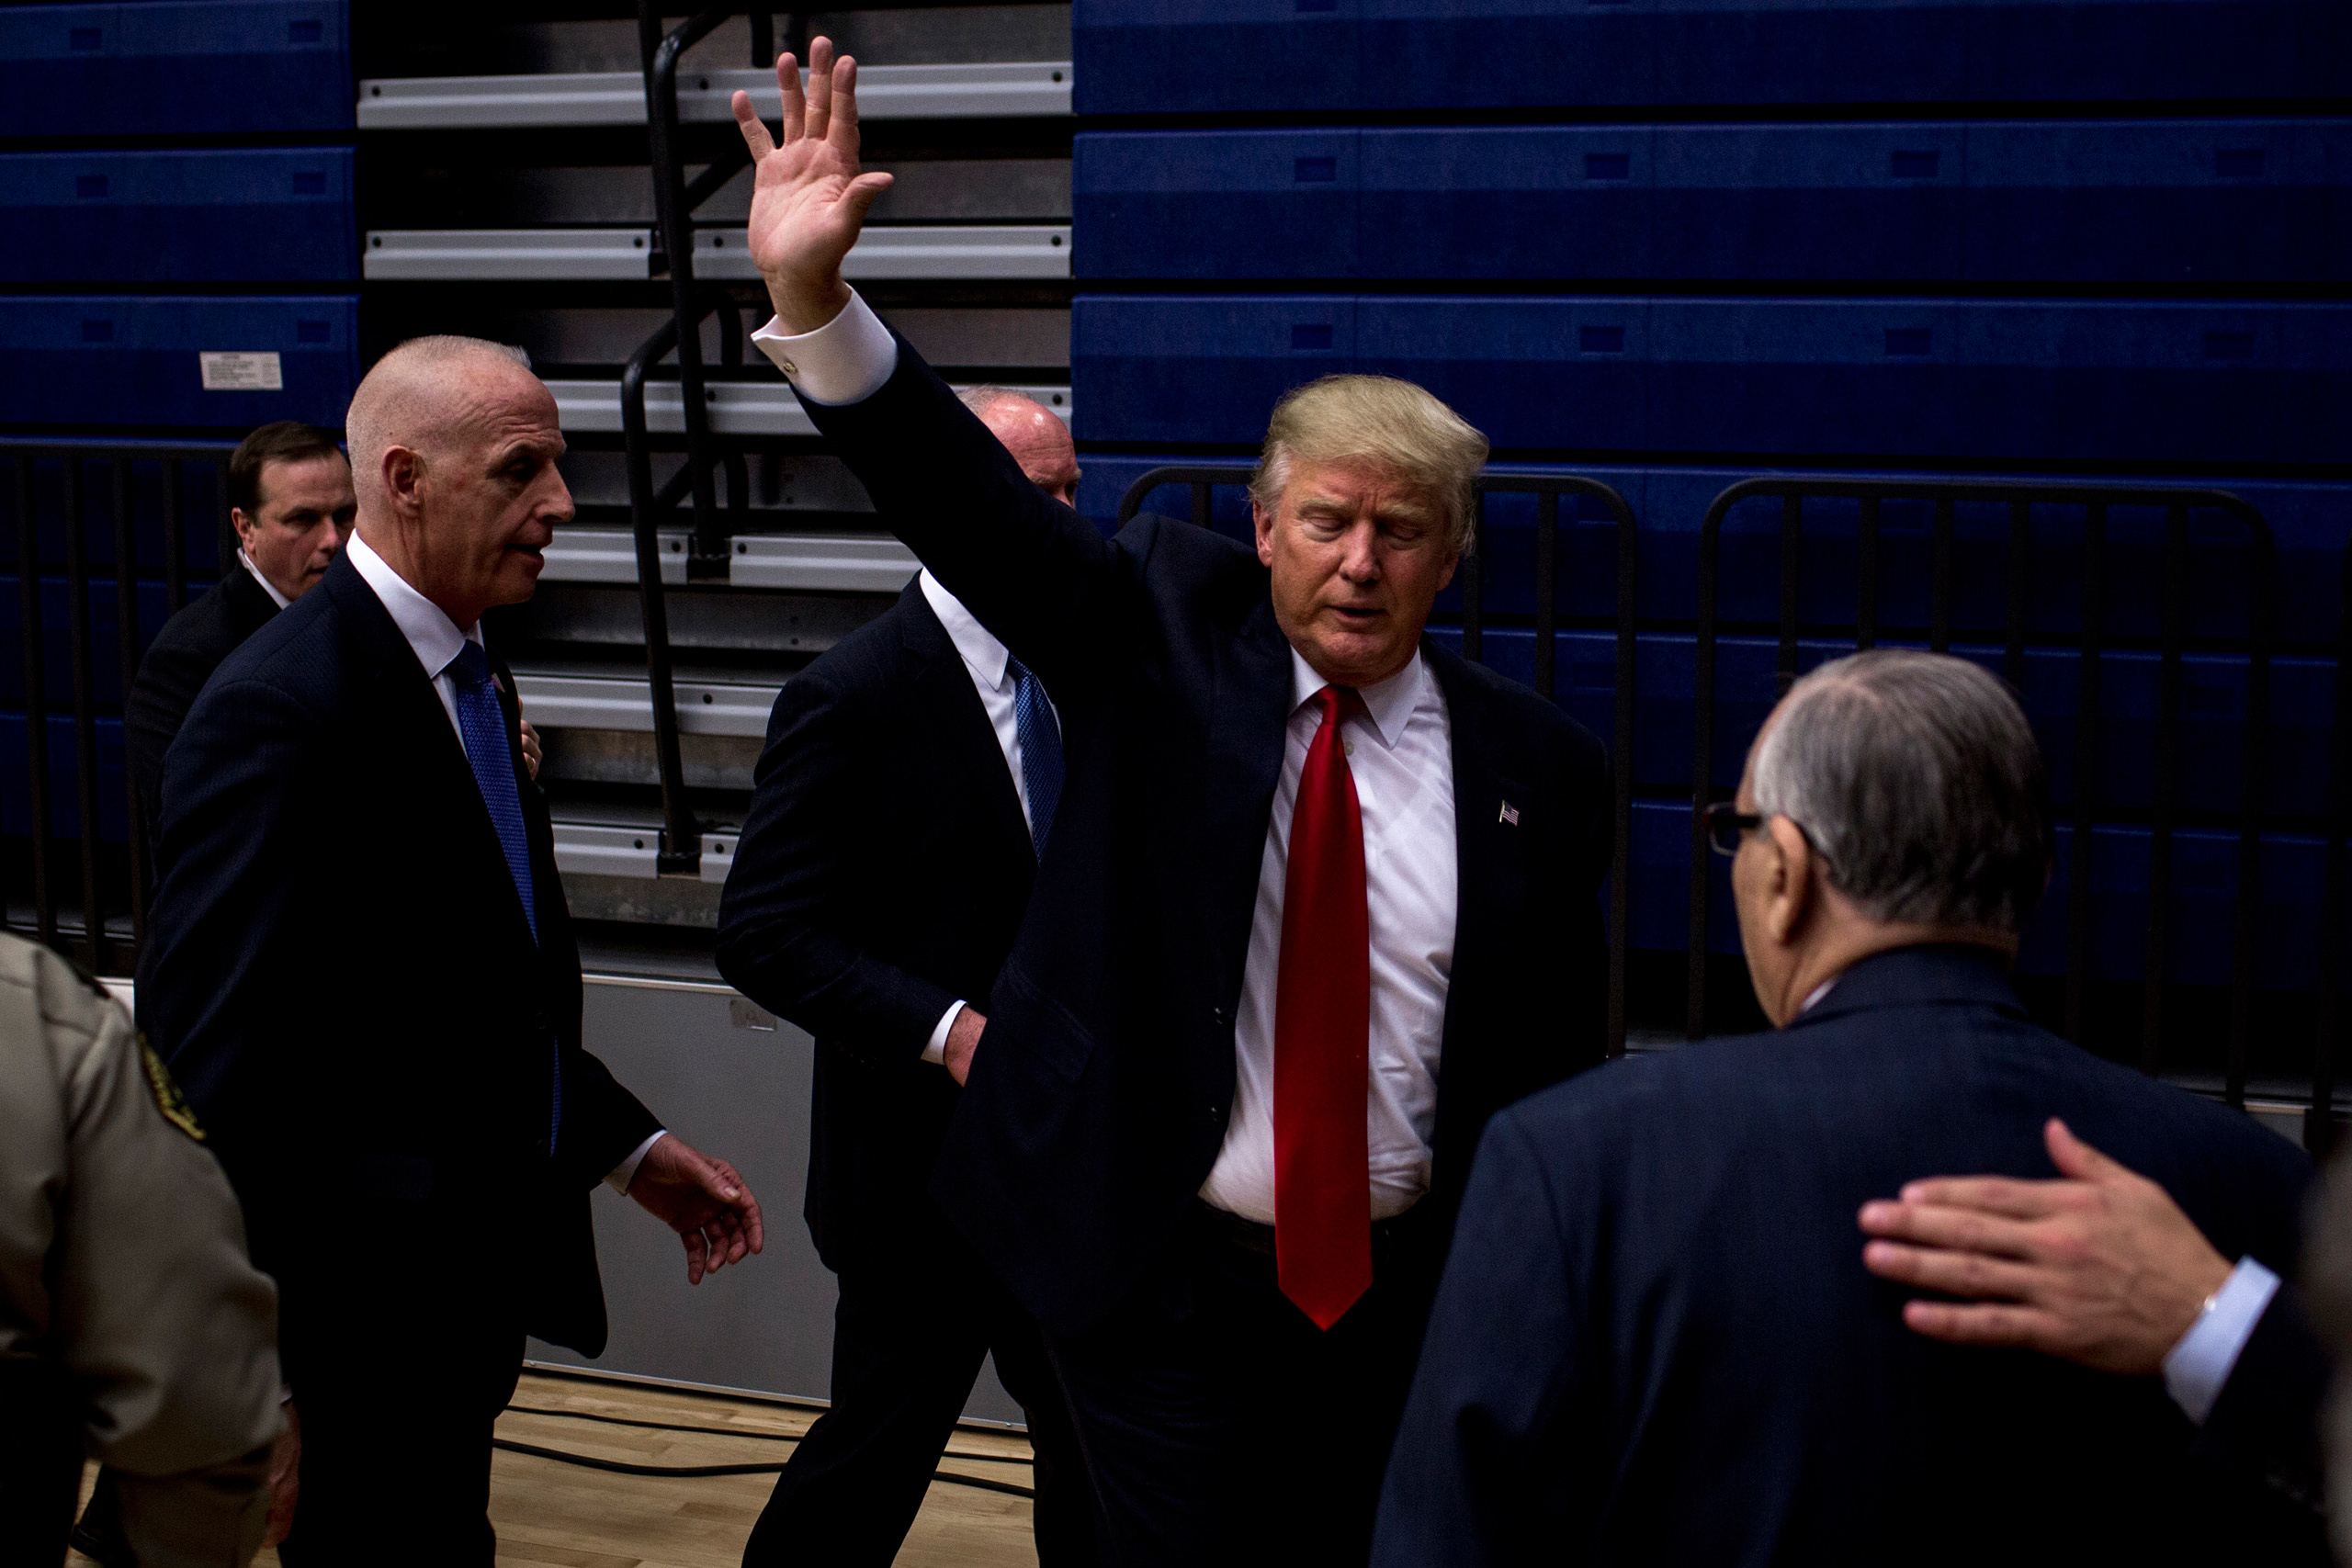 Donald Trump waves to supporters as he leaves  from a rally at Marshalltown Community School District - Roundhouse Gymnasium on Jan. 26, 2016.From  A Photographer's View of the Iowa Caucuses